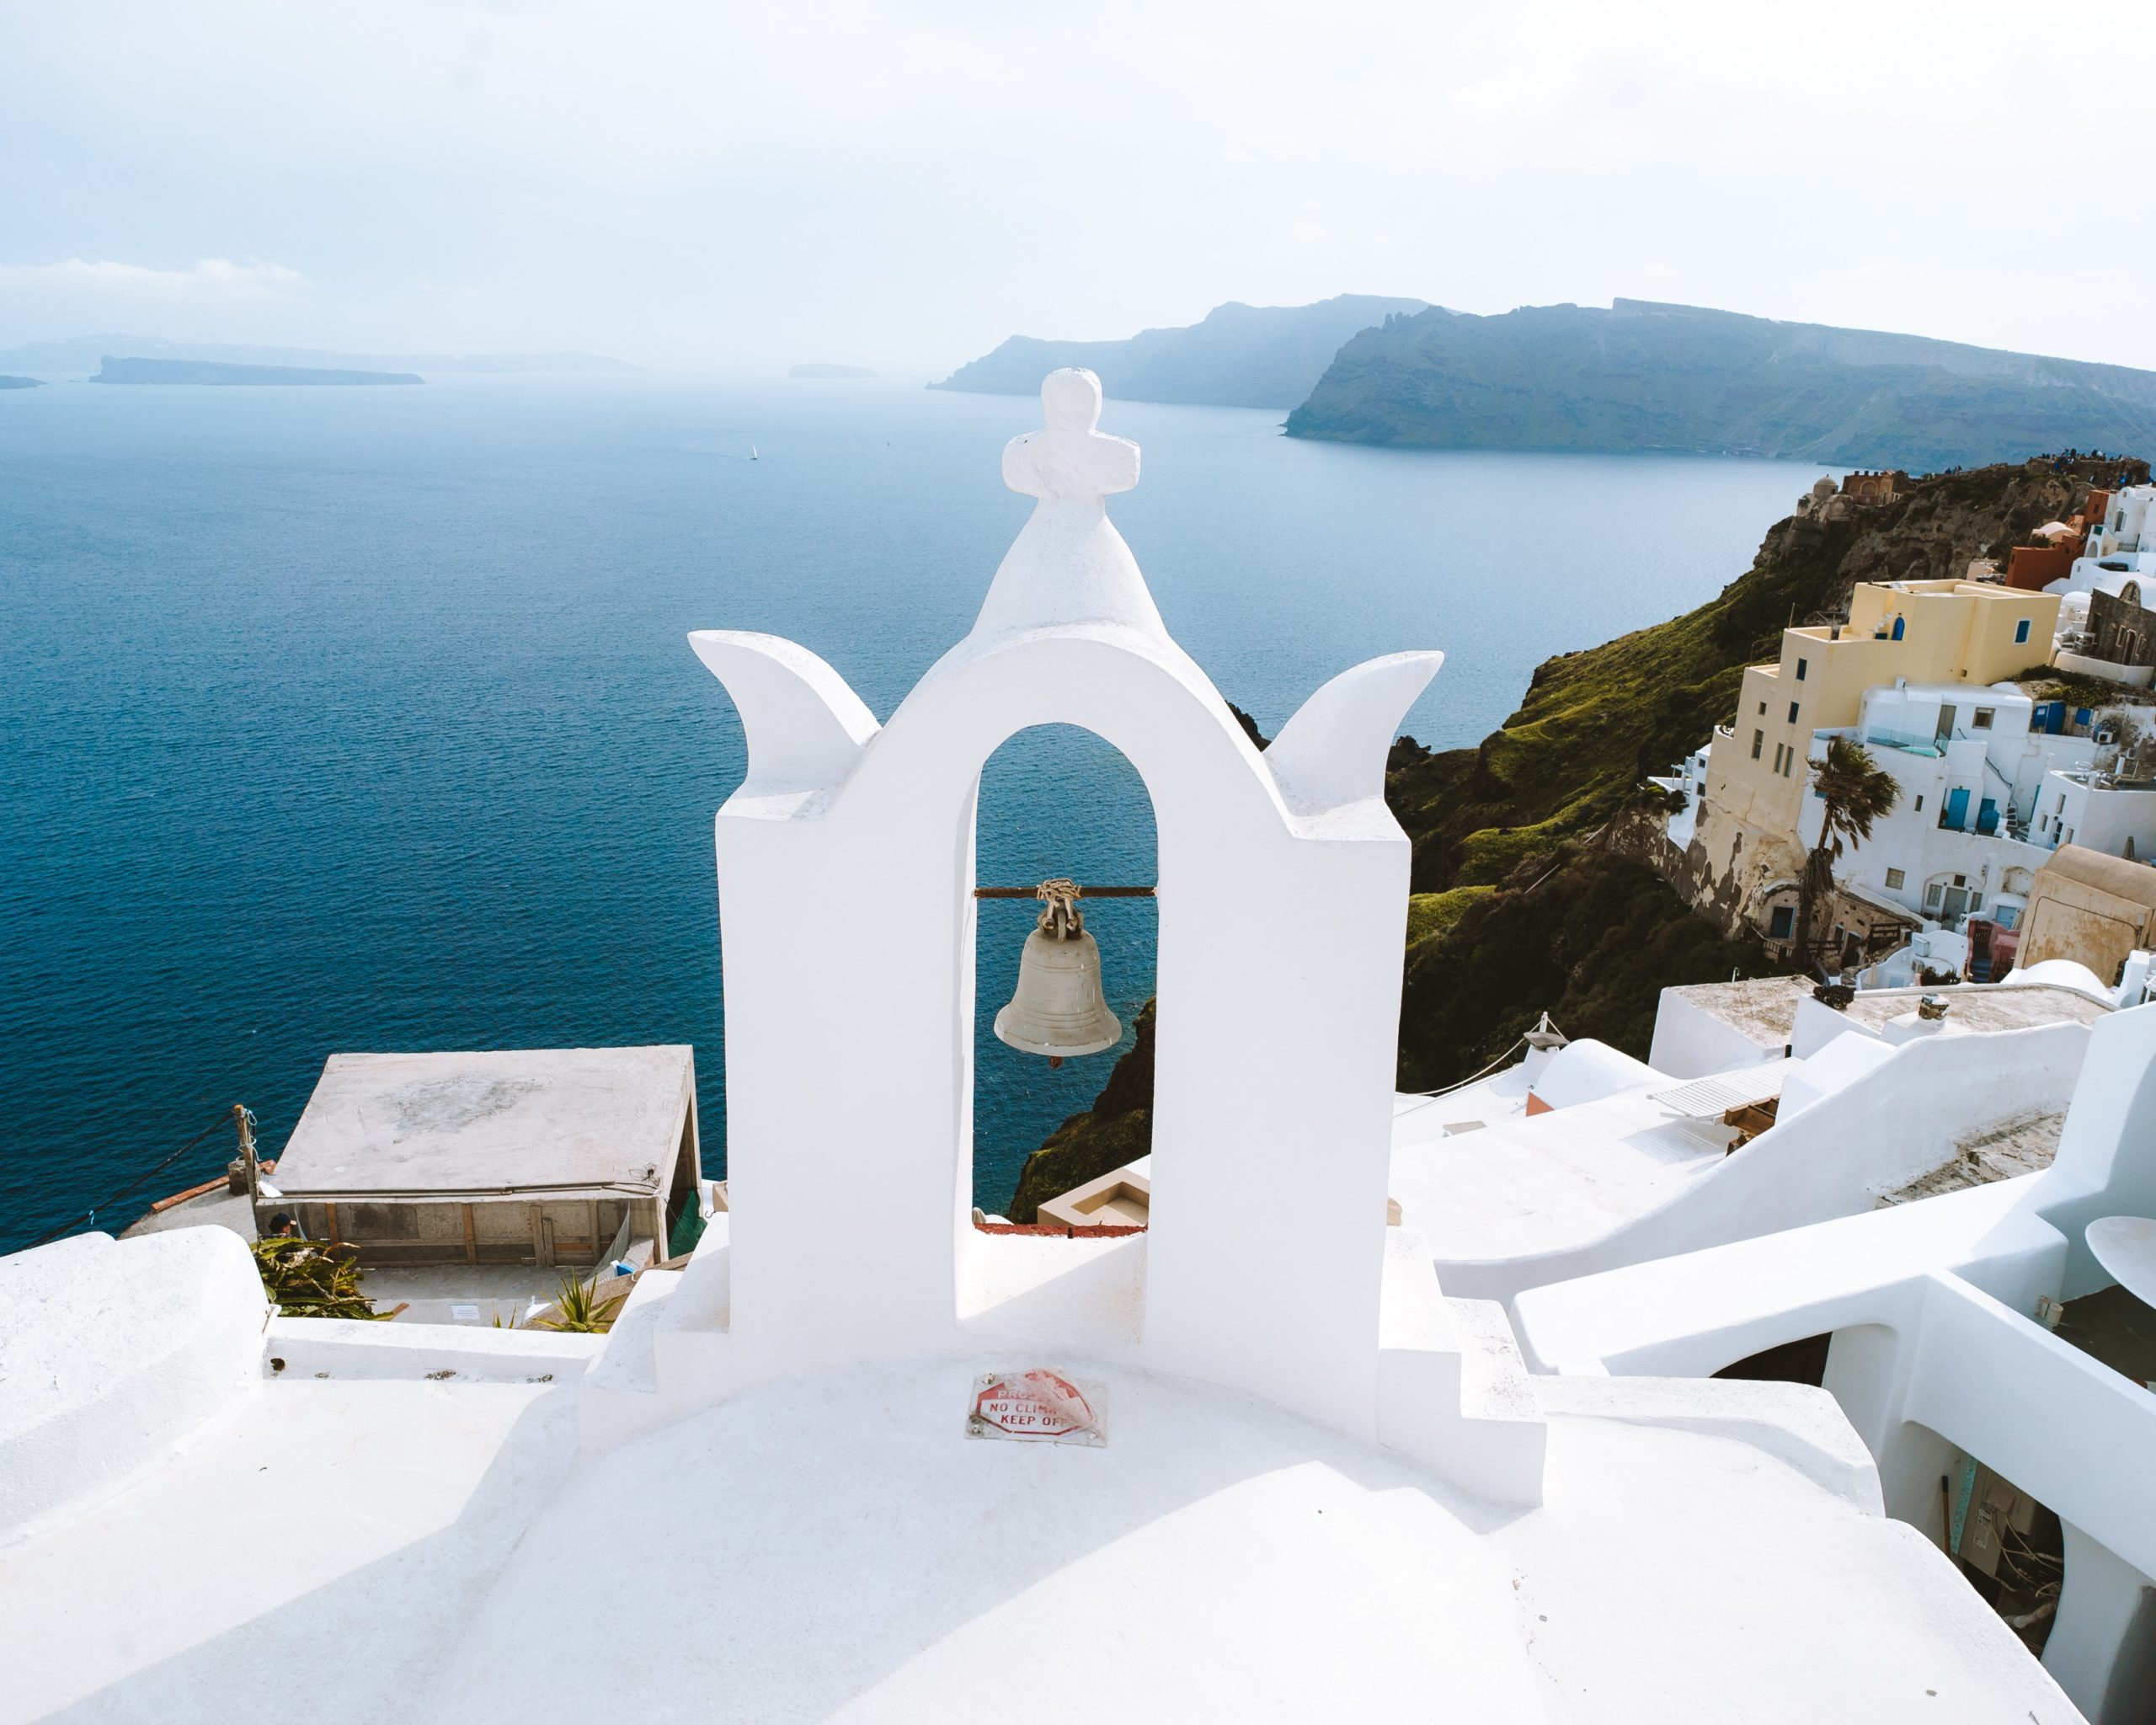 One of the 10 cheapest places to visit in Europe is the country of Greece. Stick to these small coastal towns.